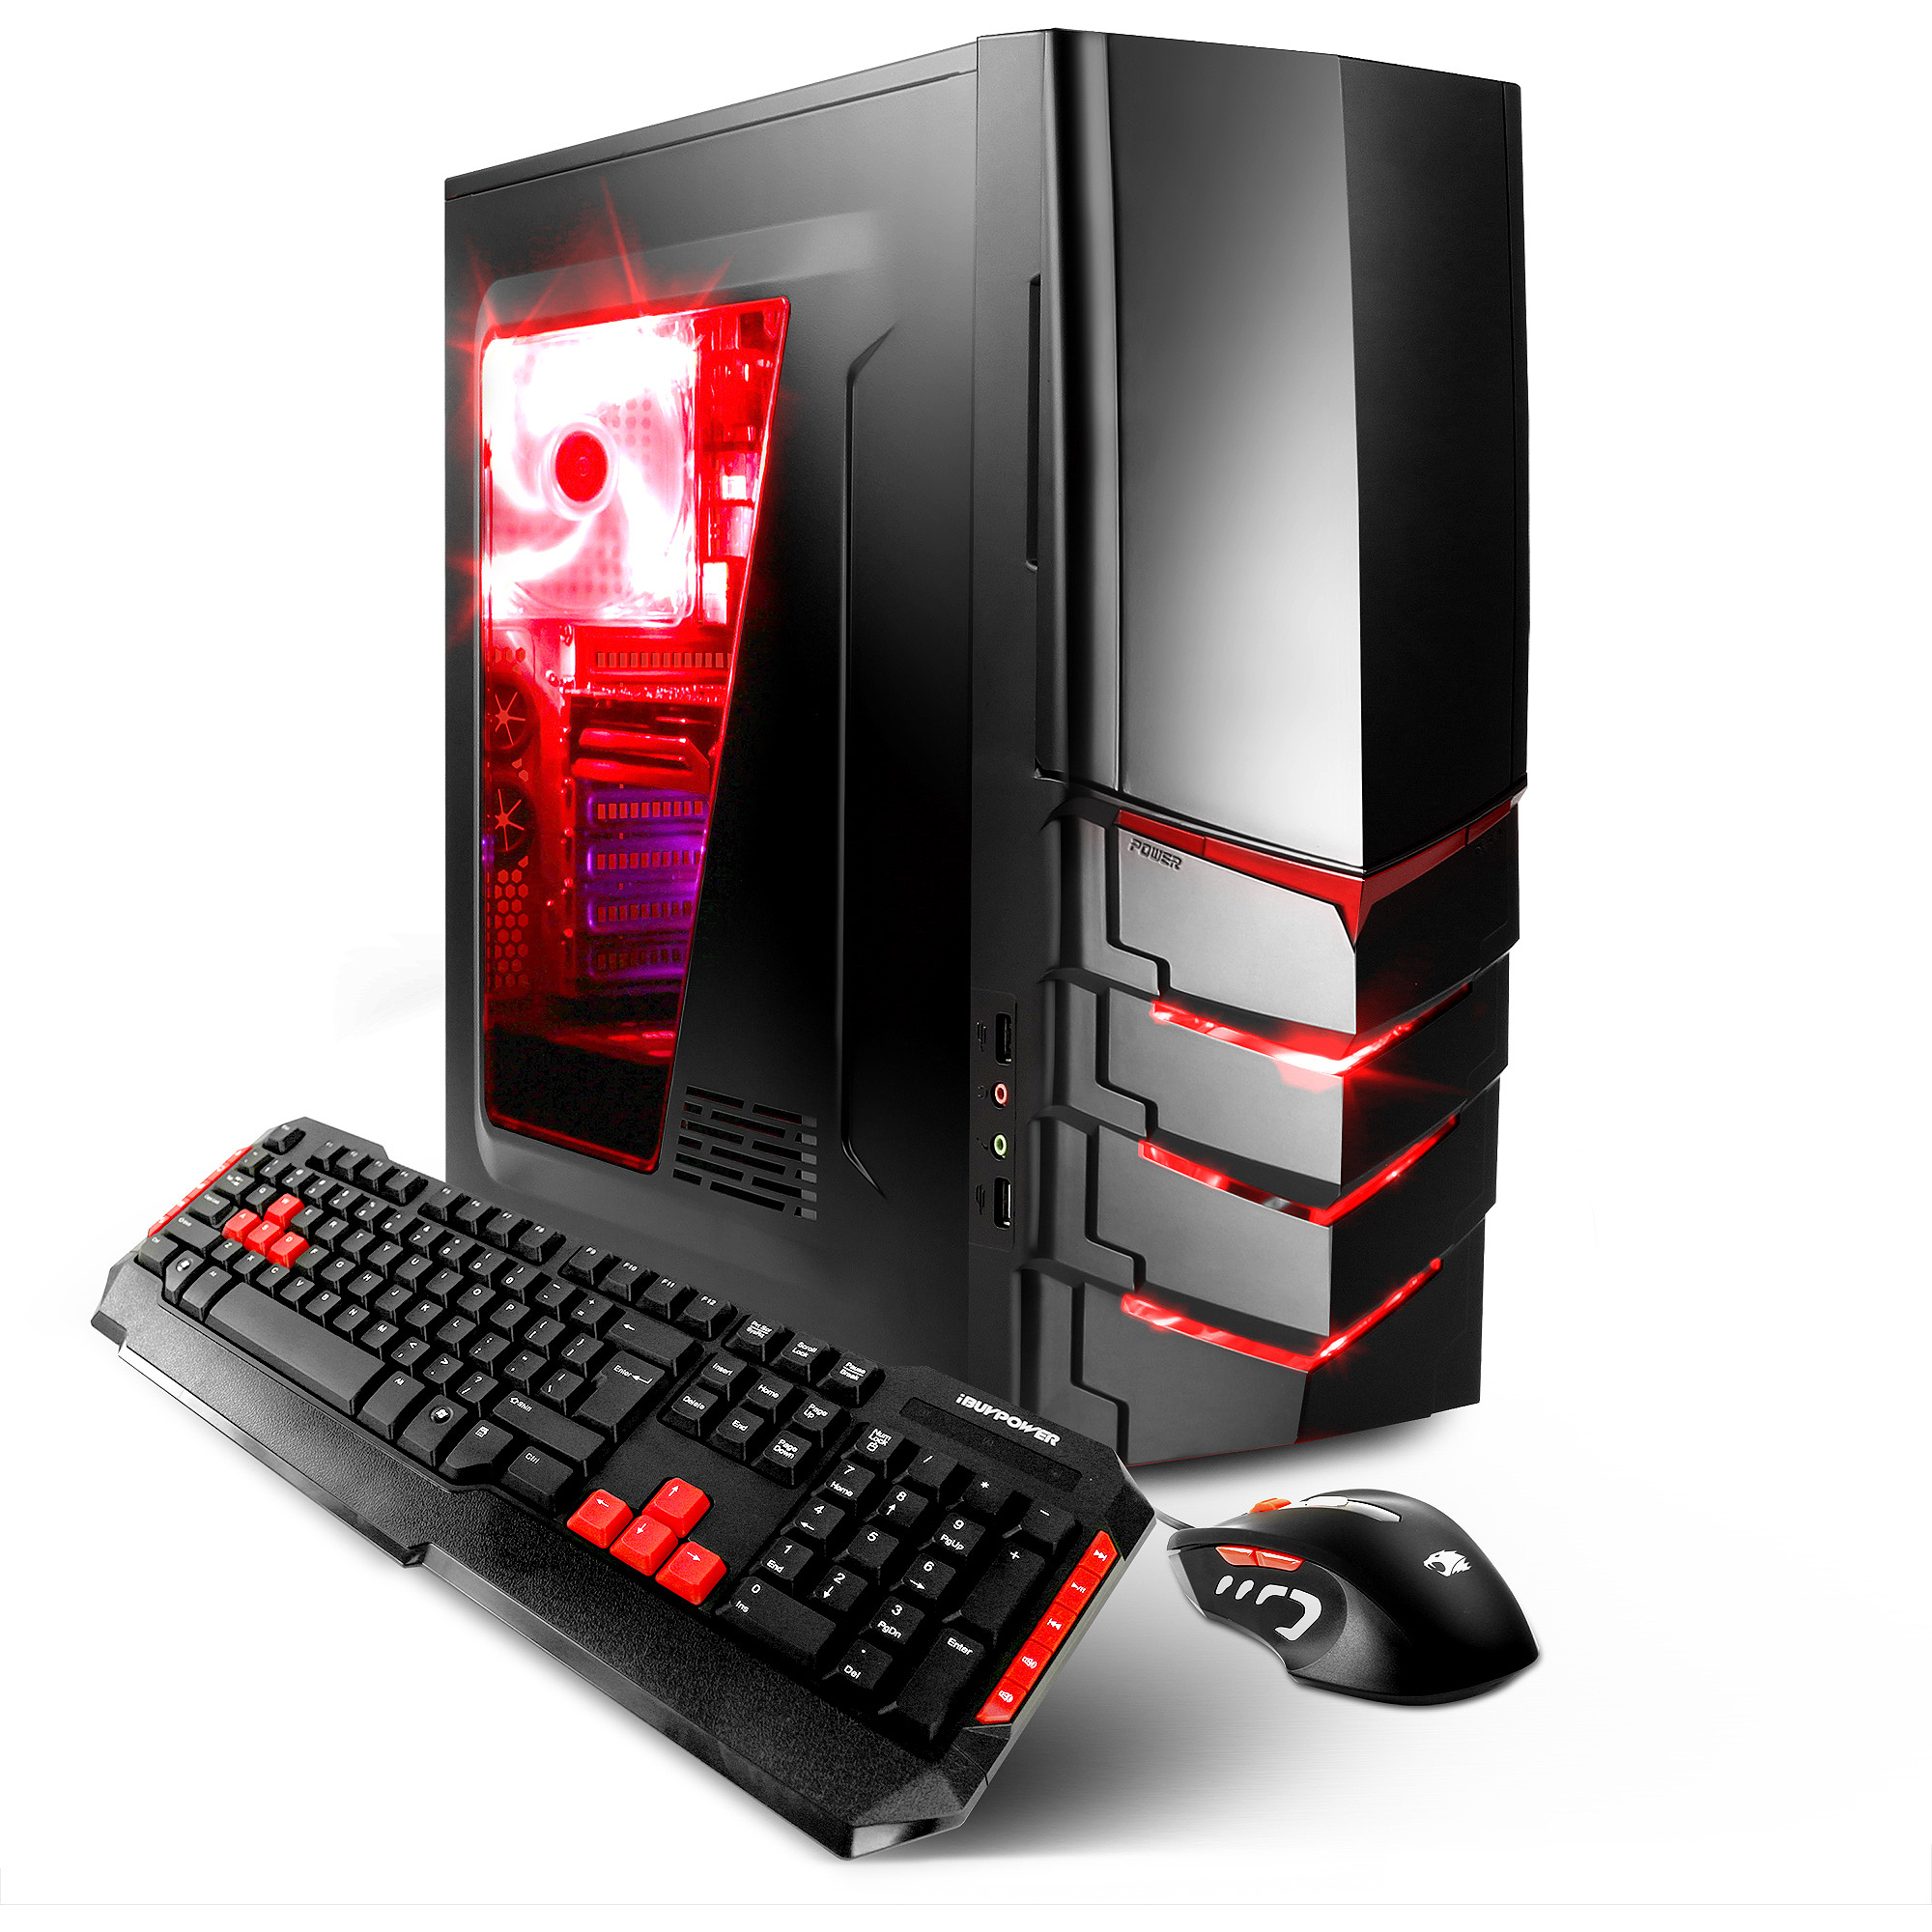 iBUYPOWER Black GAMER WA540B Gaming Desktop PC with AMD FX-4300 Vishera Quad-Core Processor, 4GB Memory, 500GB Hard Drive and Windows 10 Home (Monitor Not Included)